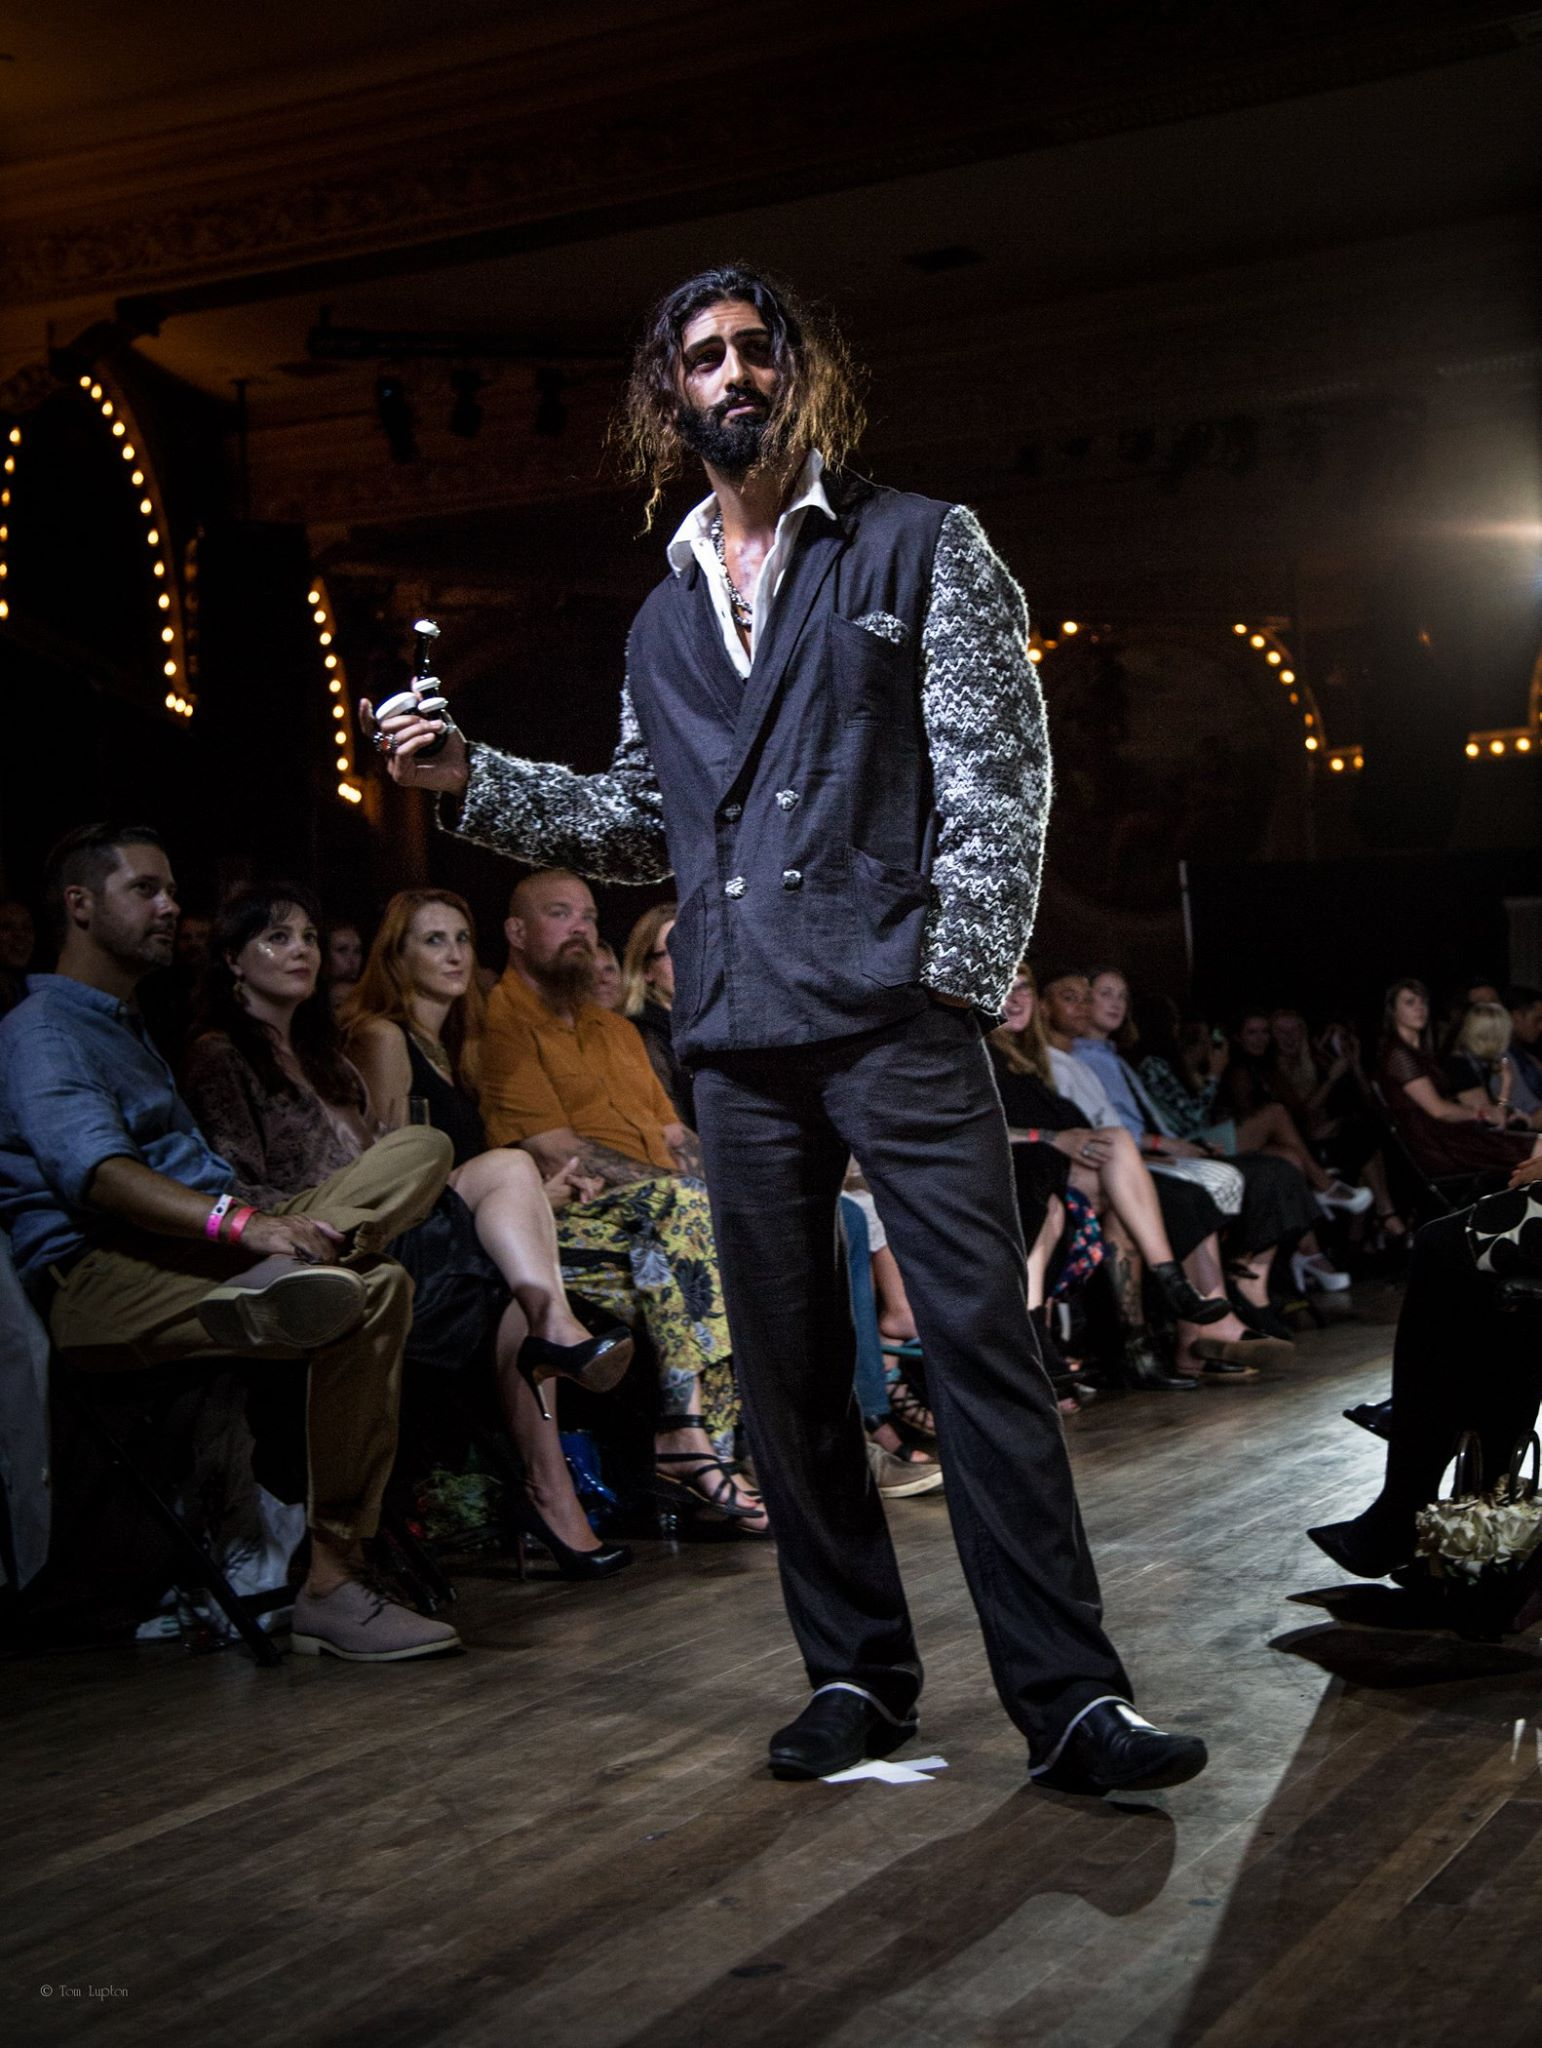 Tom_Lupton_Photography_Fashion_Runway_2.jpg